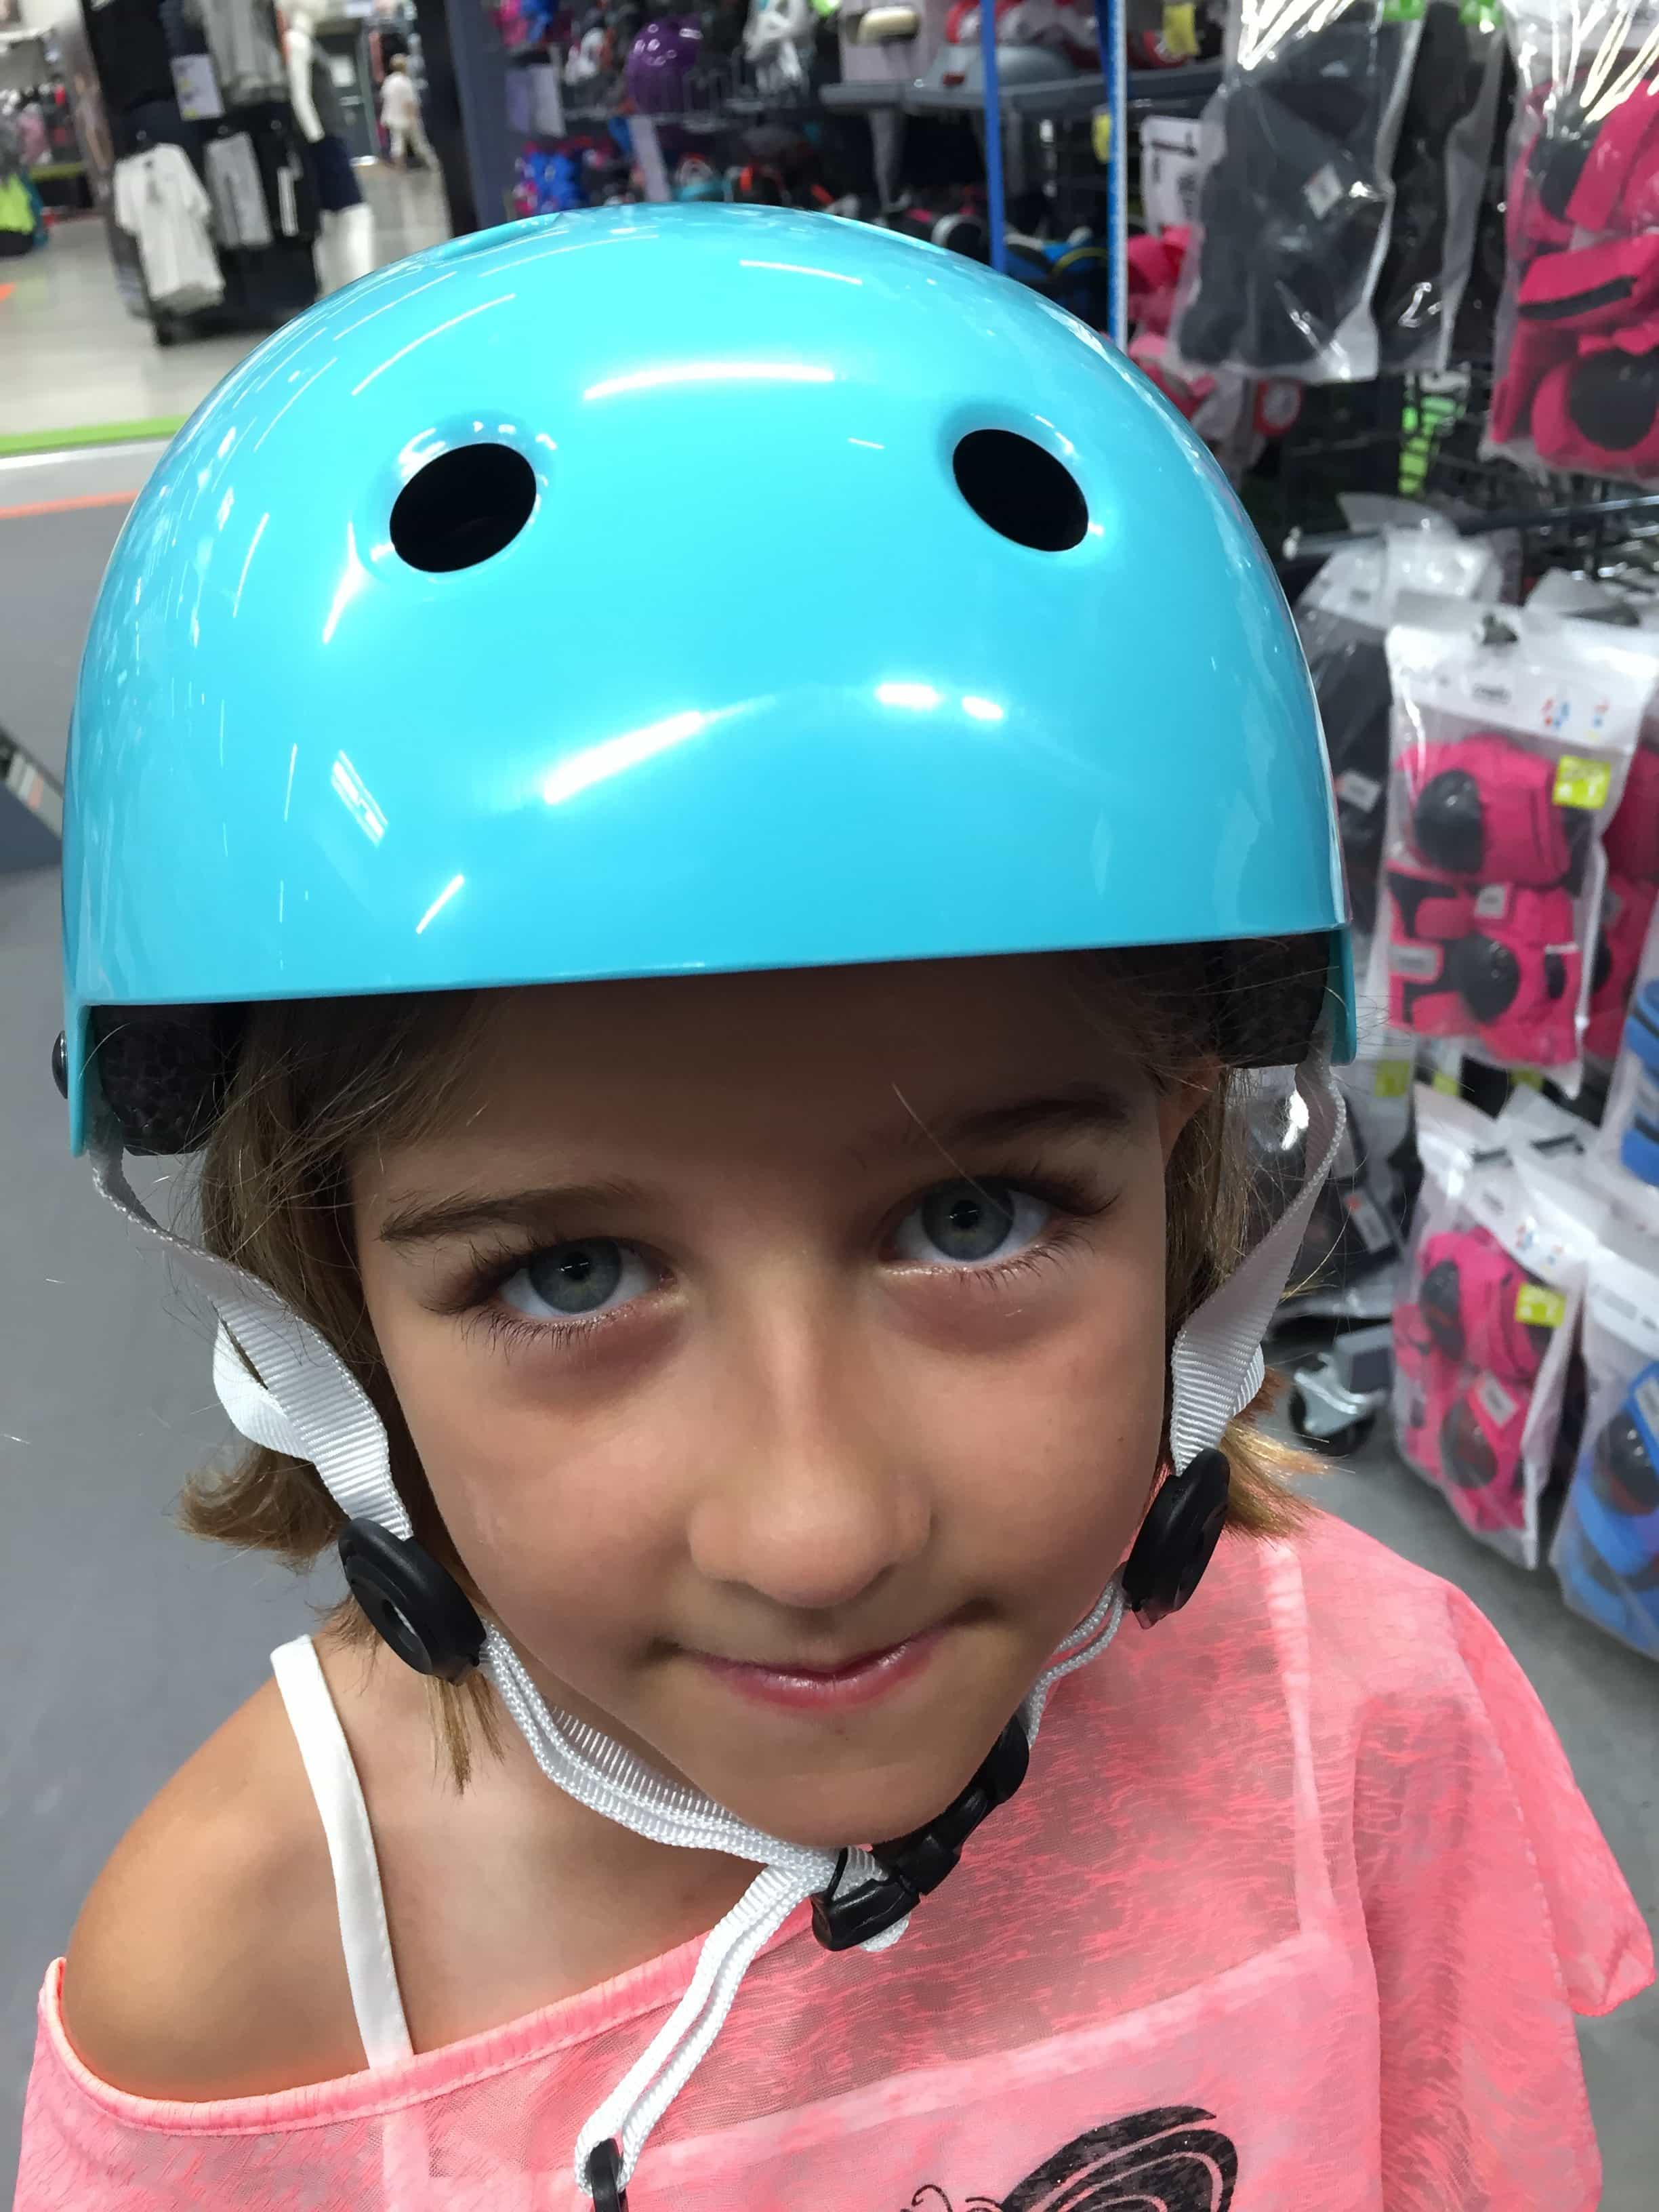 Vivi got a new helmet